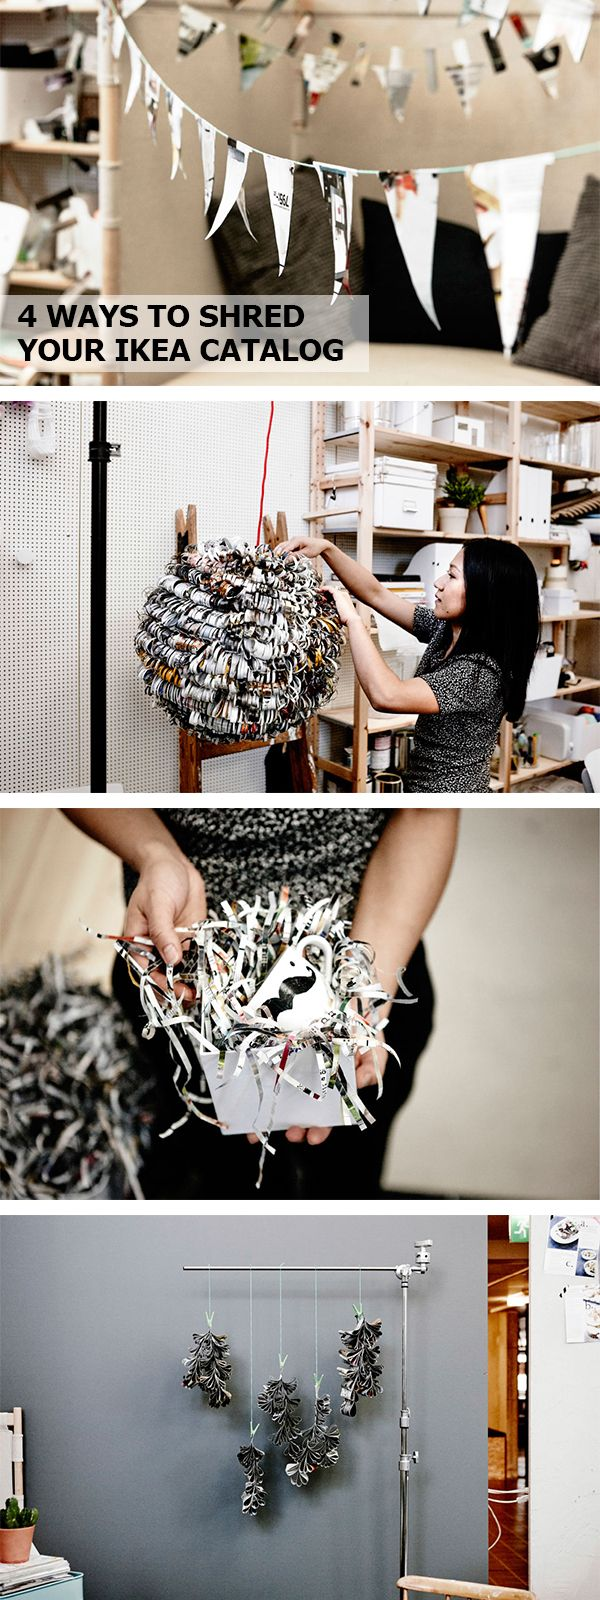 get creative with recycling click for diy ideas to shred your old ikea catalogs ikea diys. Black Bedroom Furniture Sets. Home Design Ideas